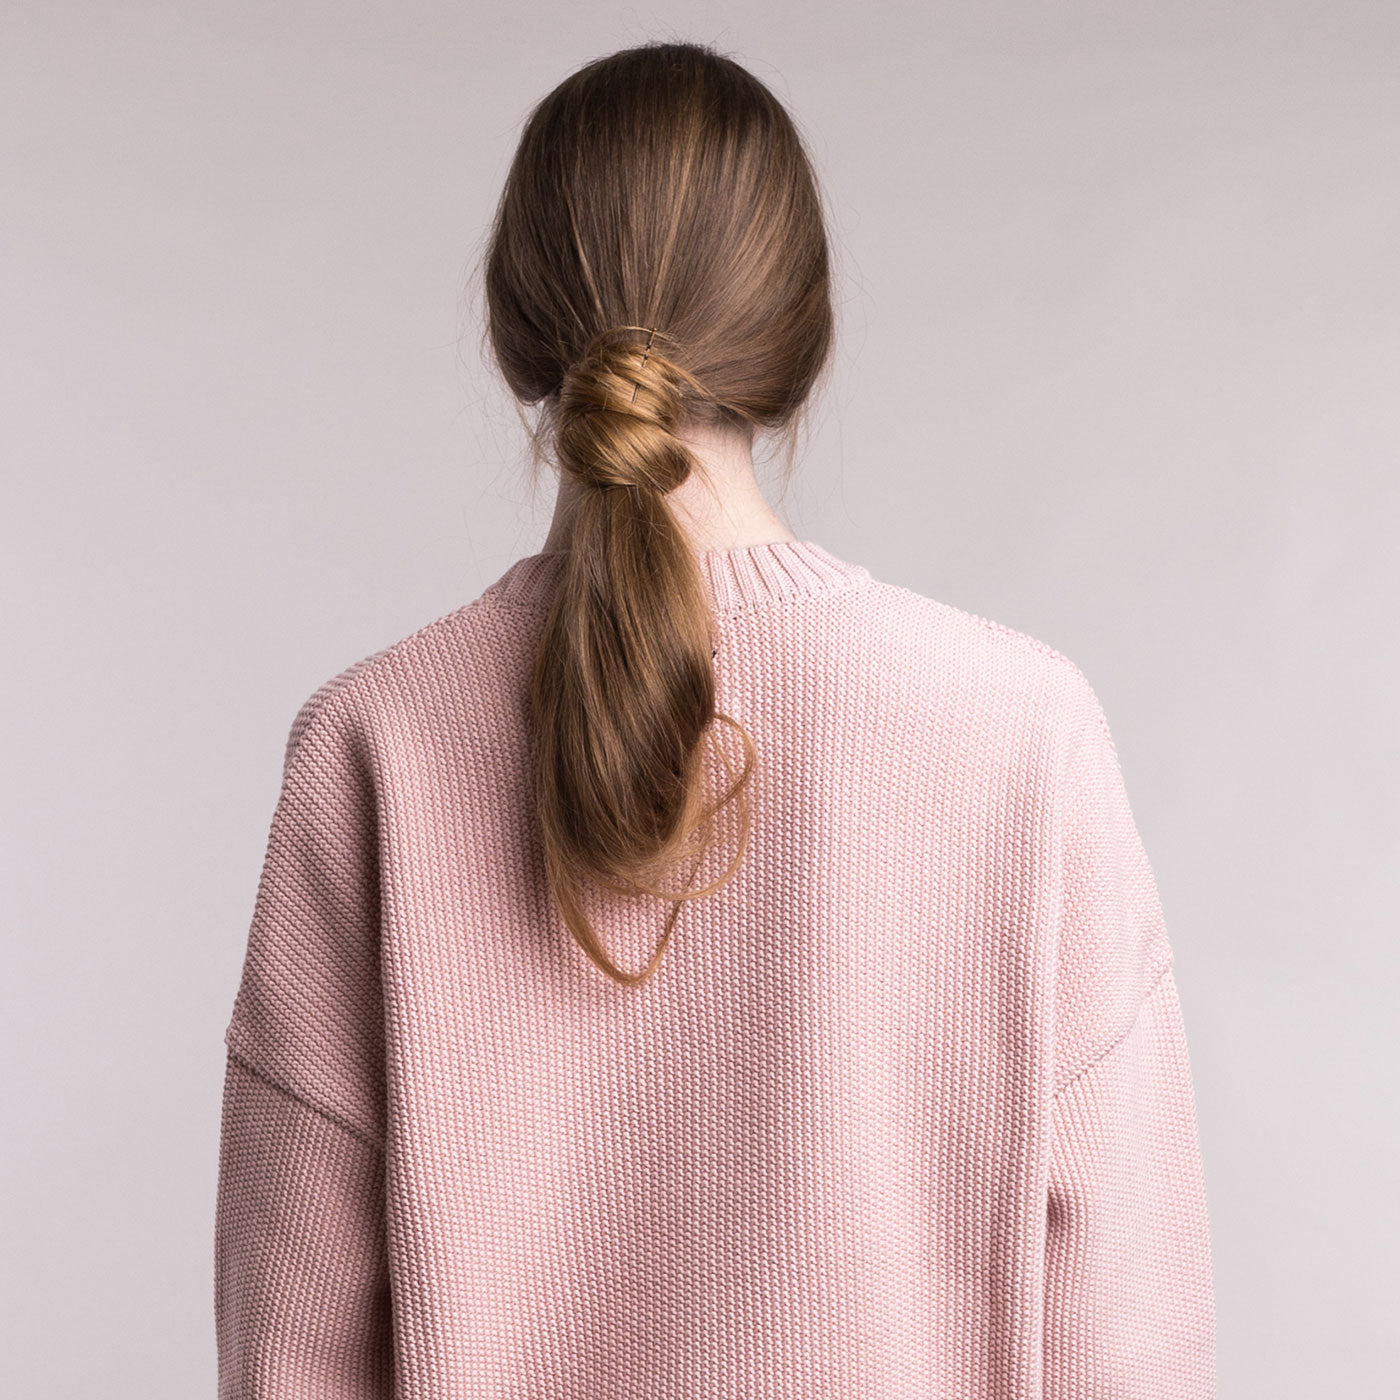 The model wears a dusty pink sustainable organic cotton knitted fine rice pullover, back view.